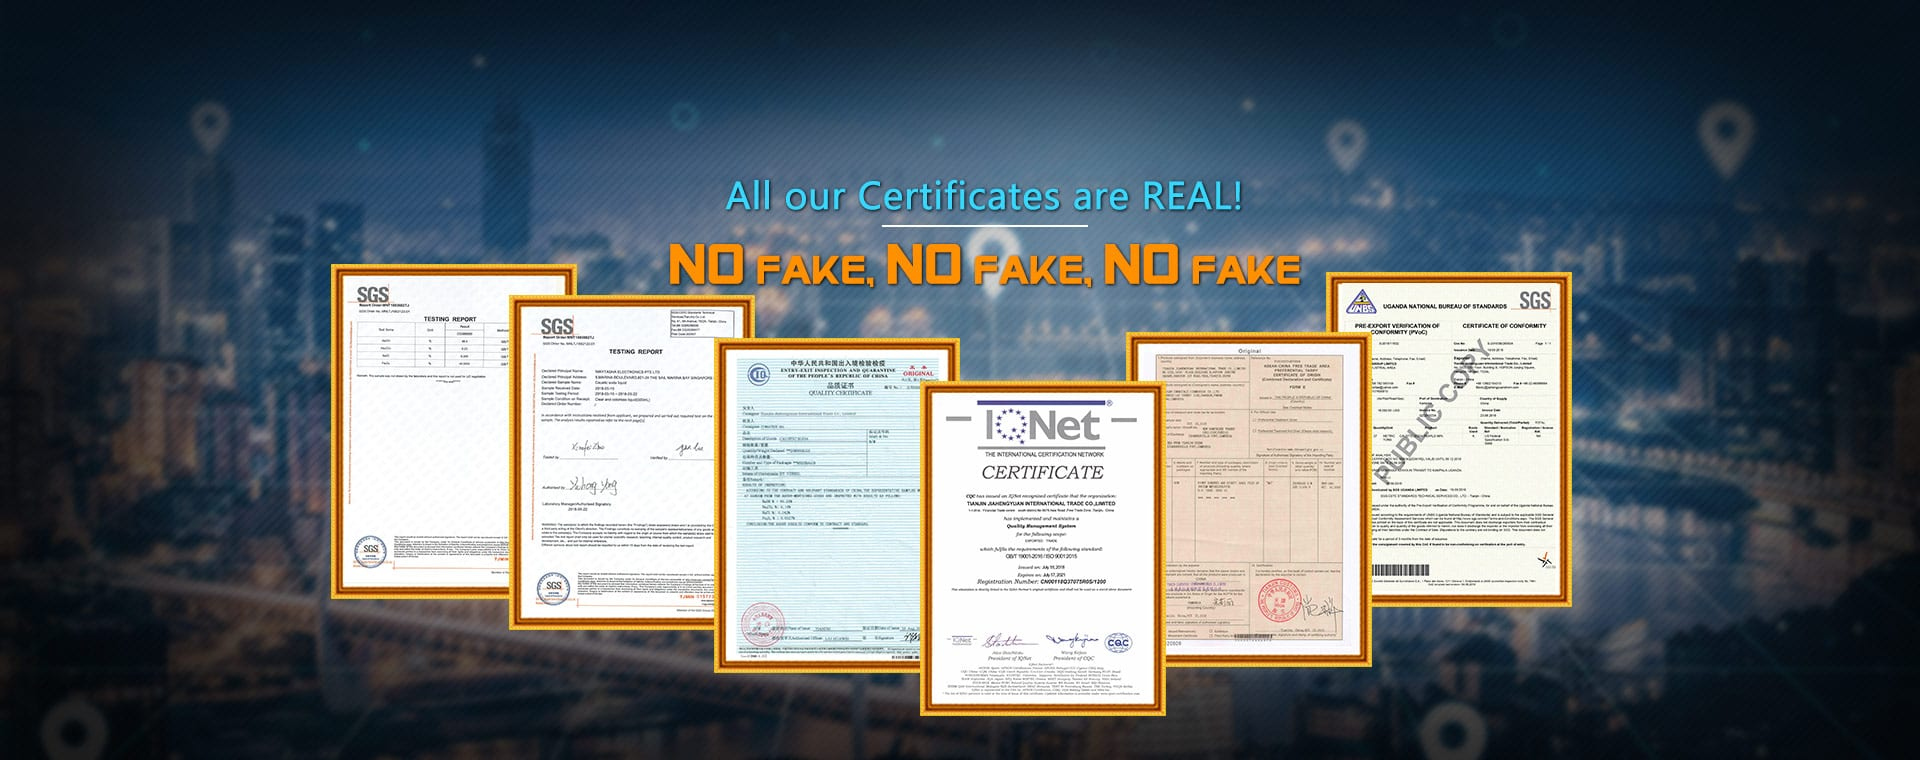 All our Certificates are REAL!